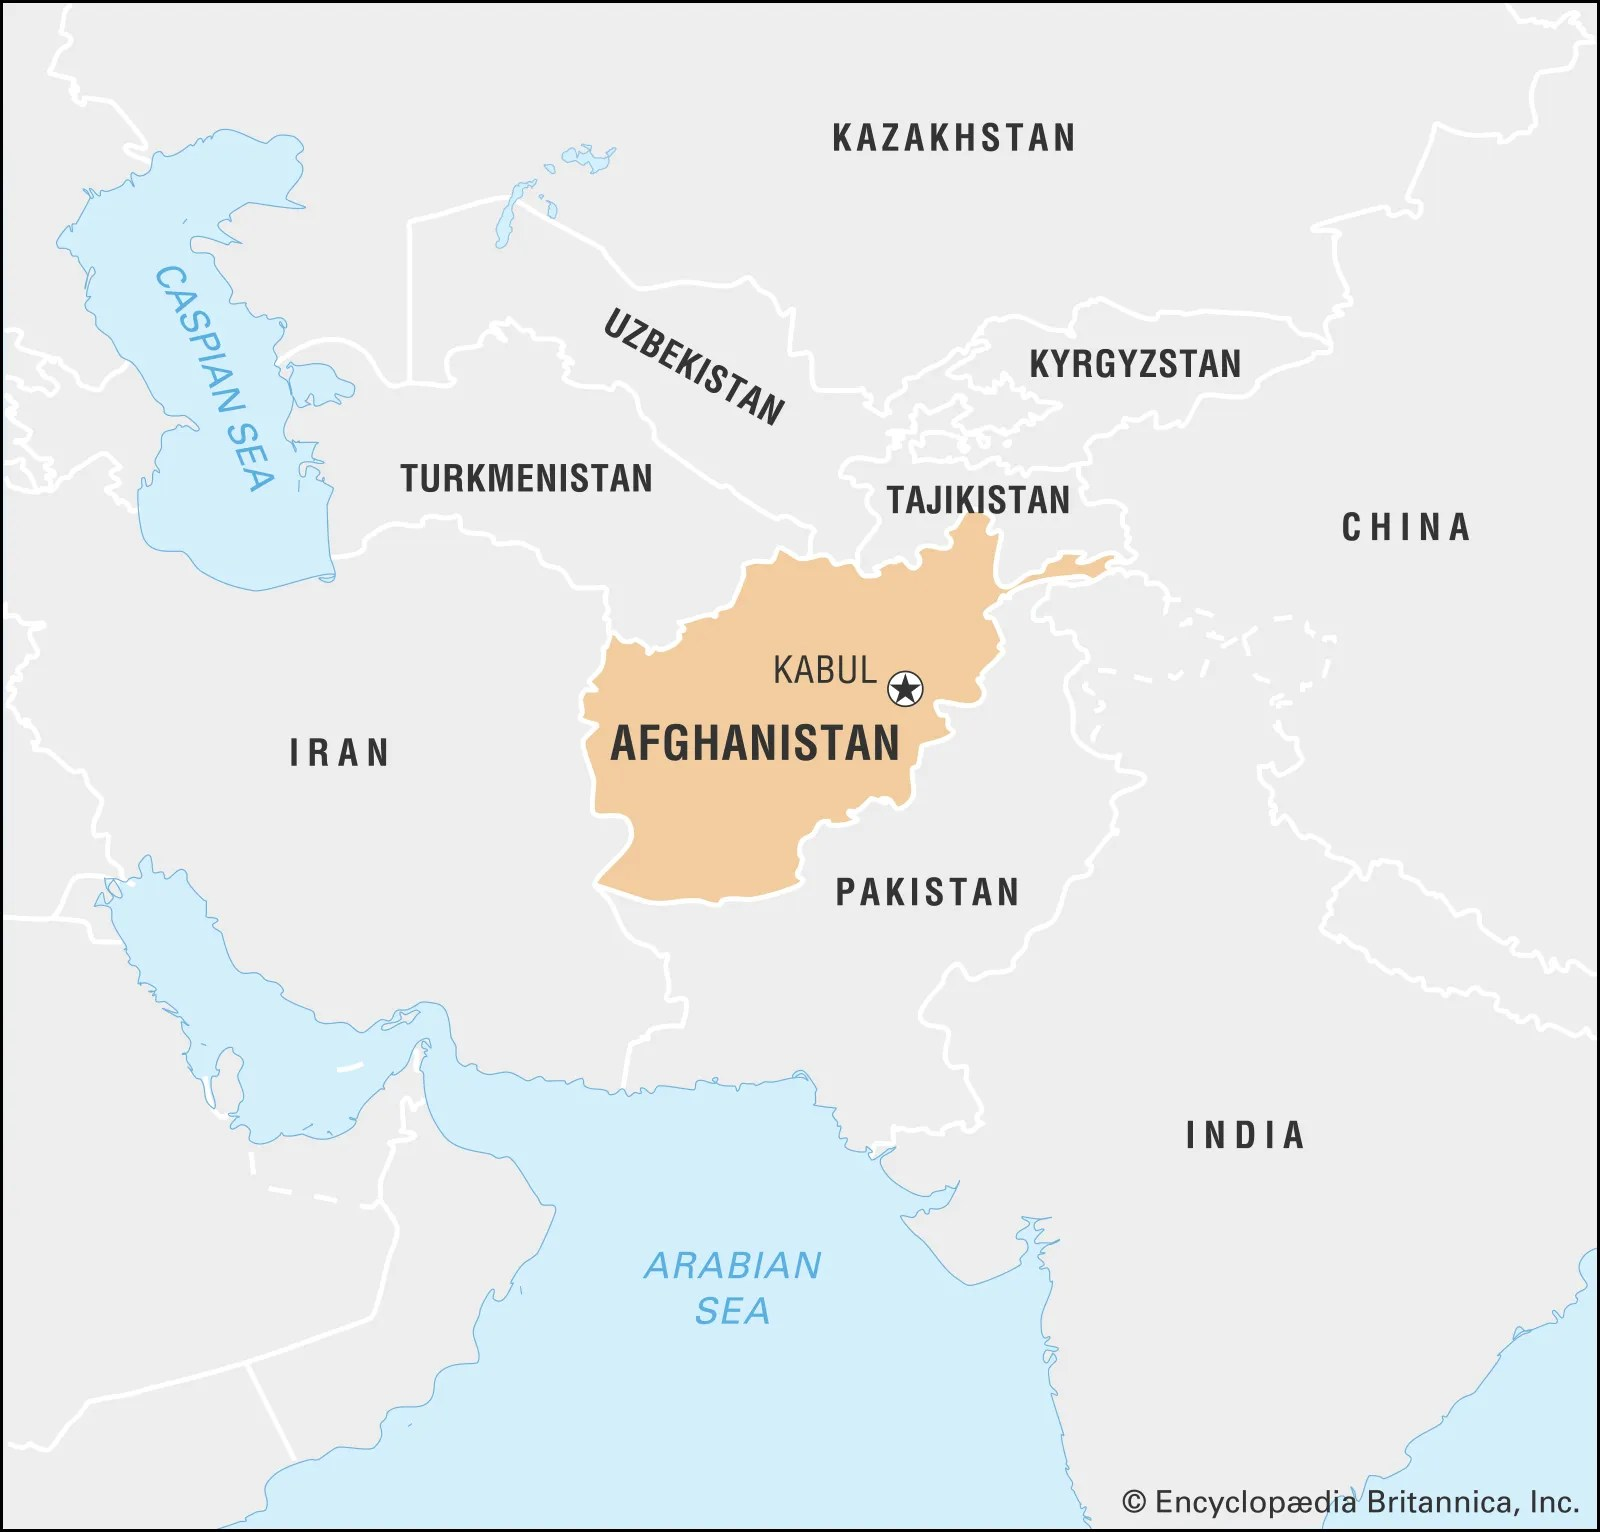 Where Is Kabul On The Map